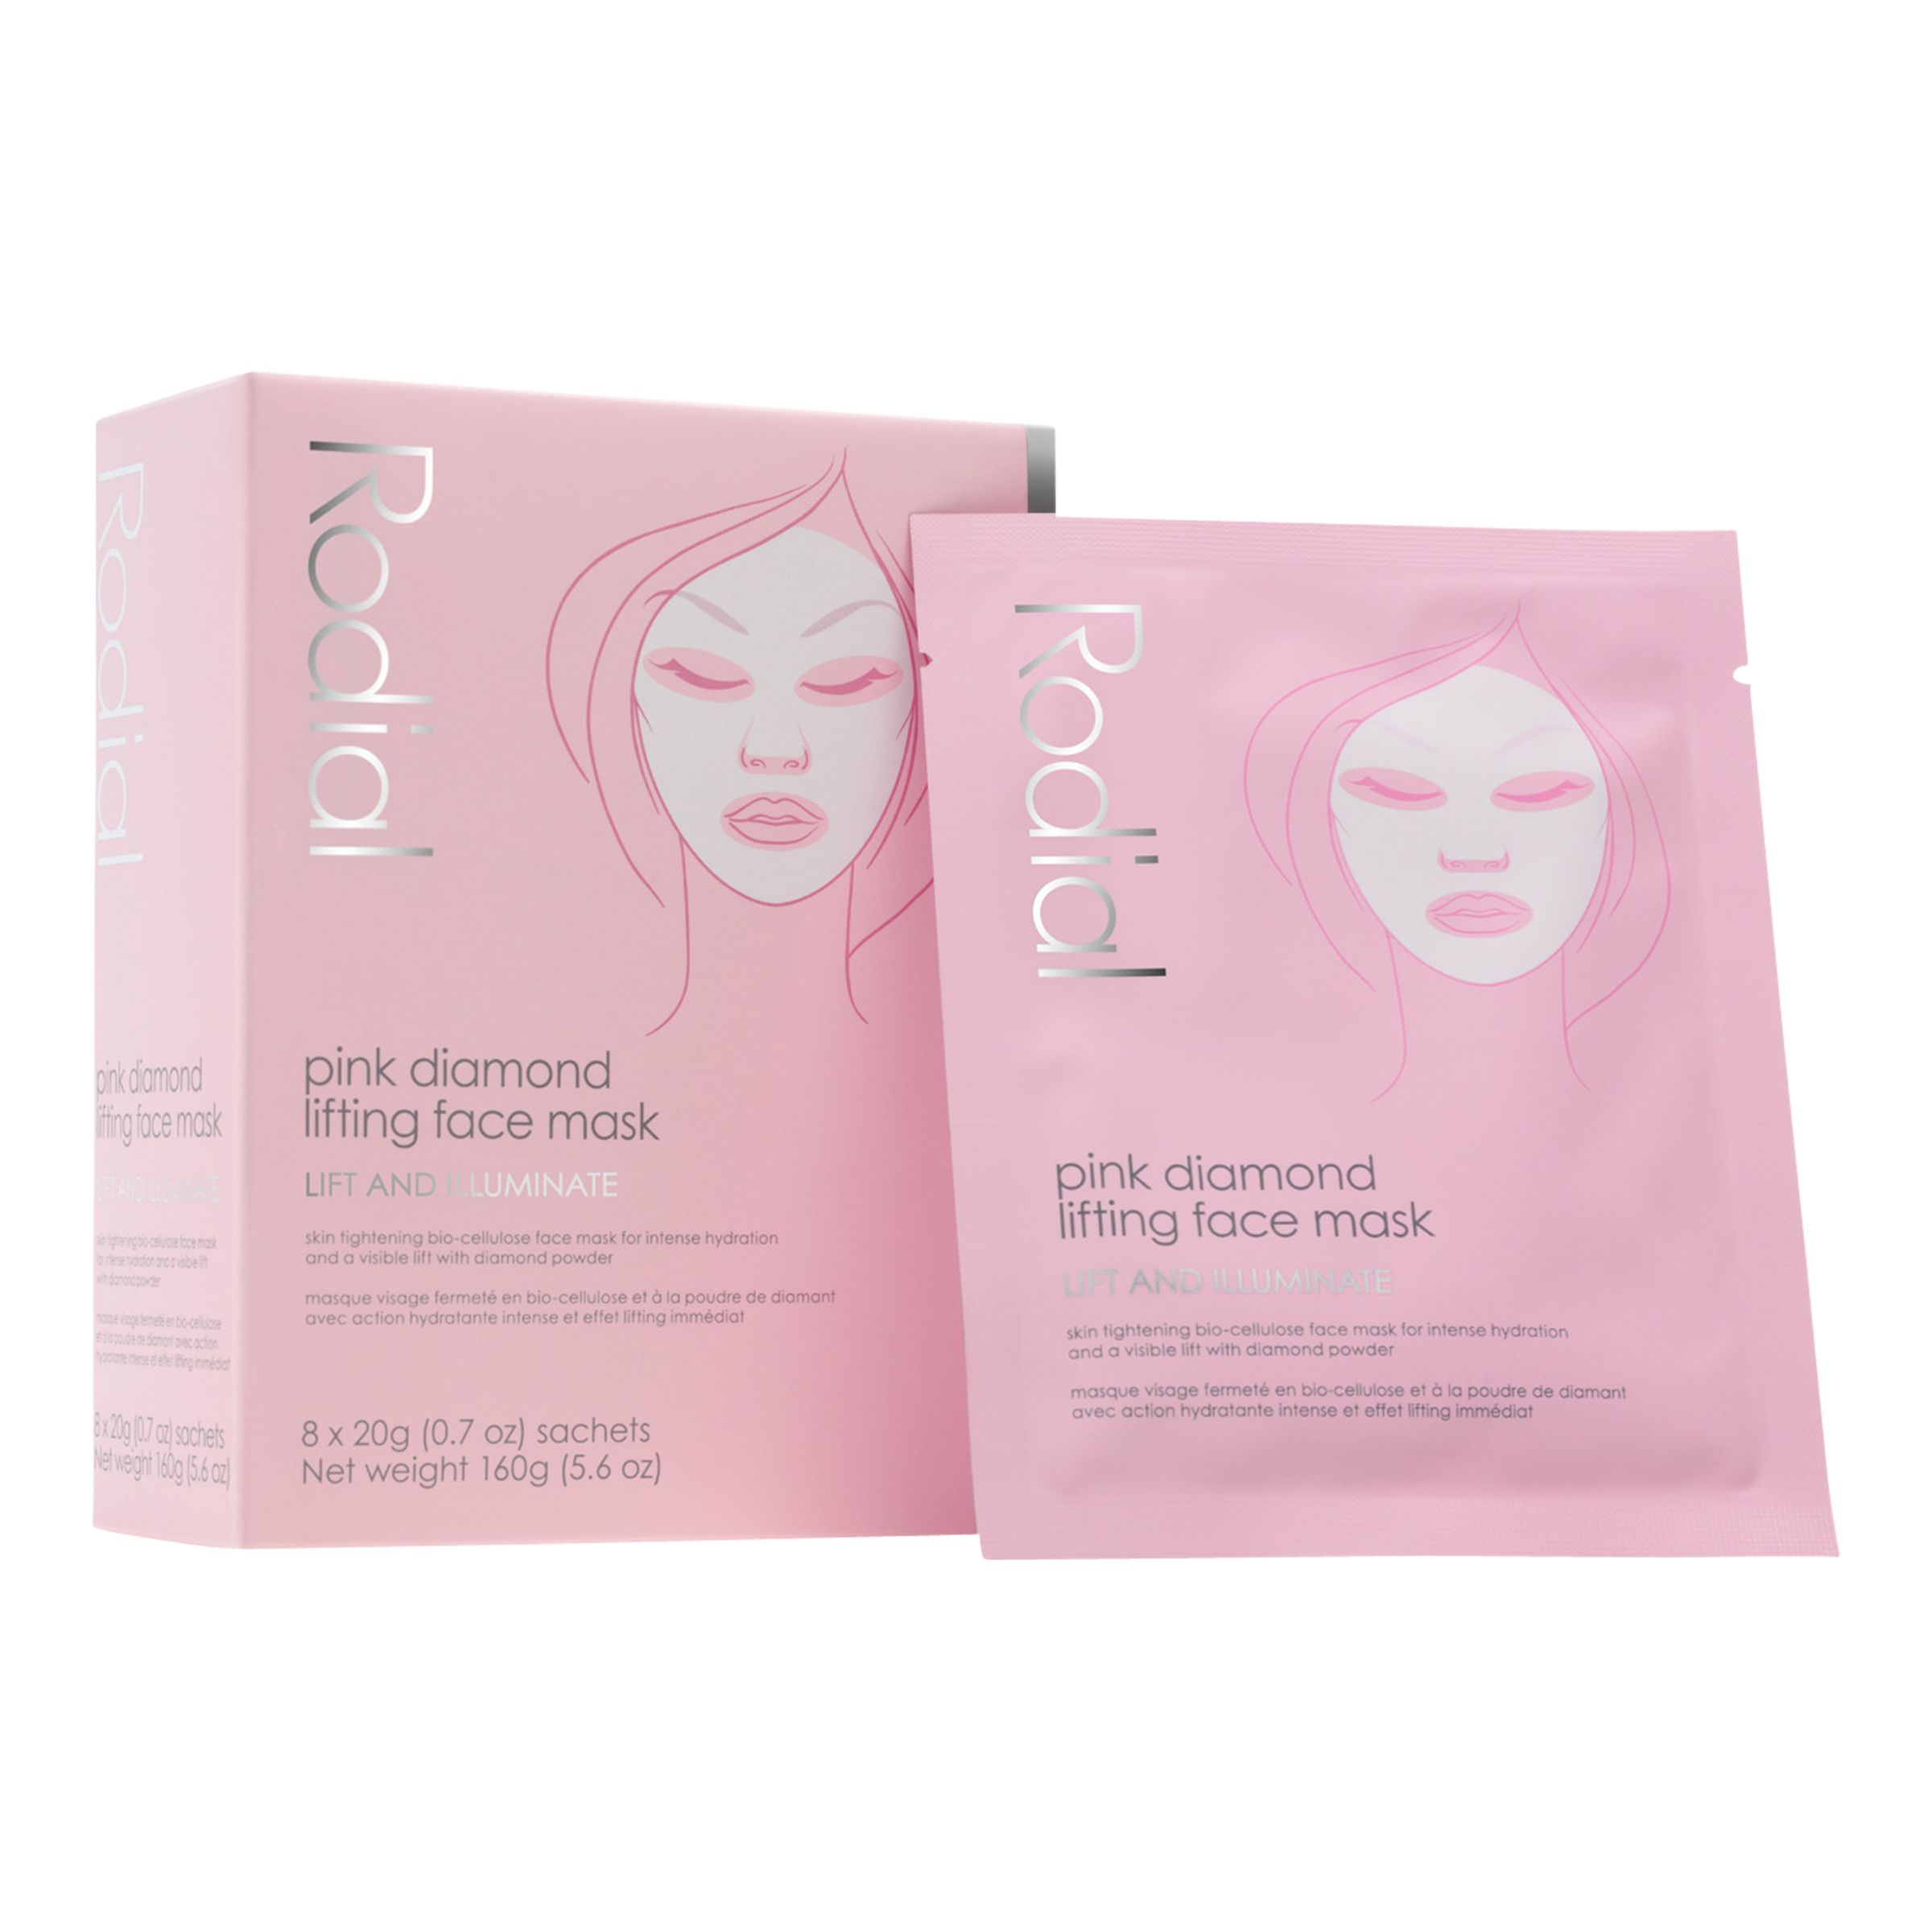 Rodial Rodial Pink Diamond Lifting Face Mask, 8 x 20g